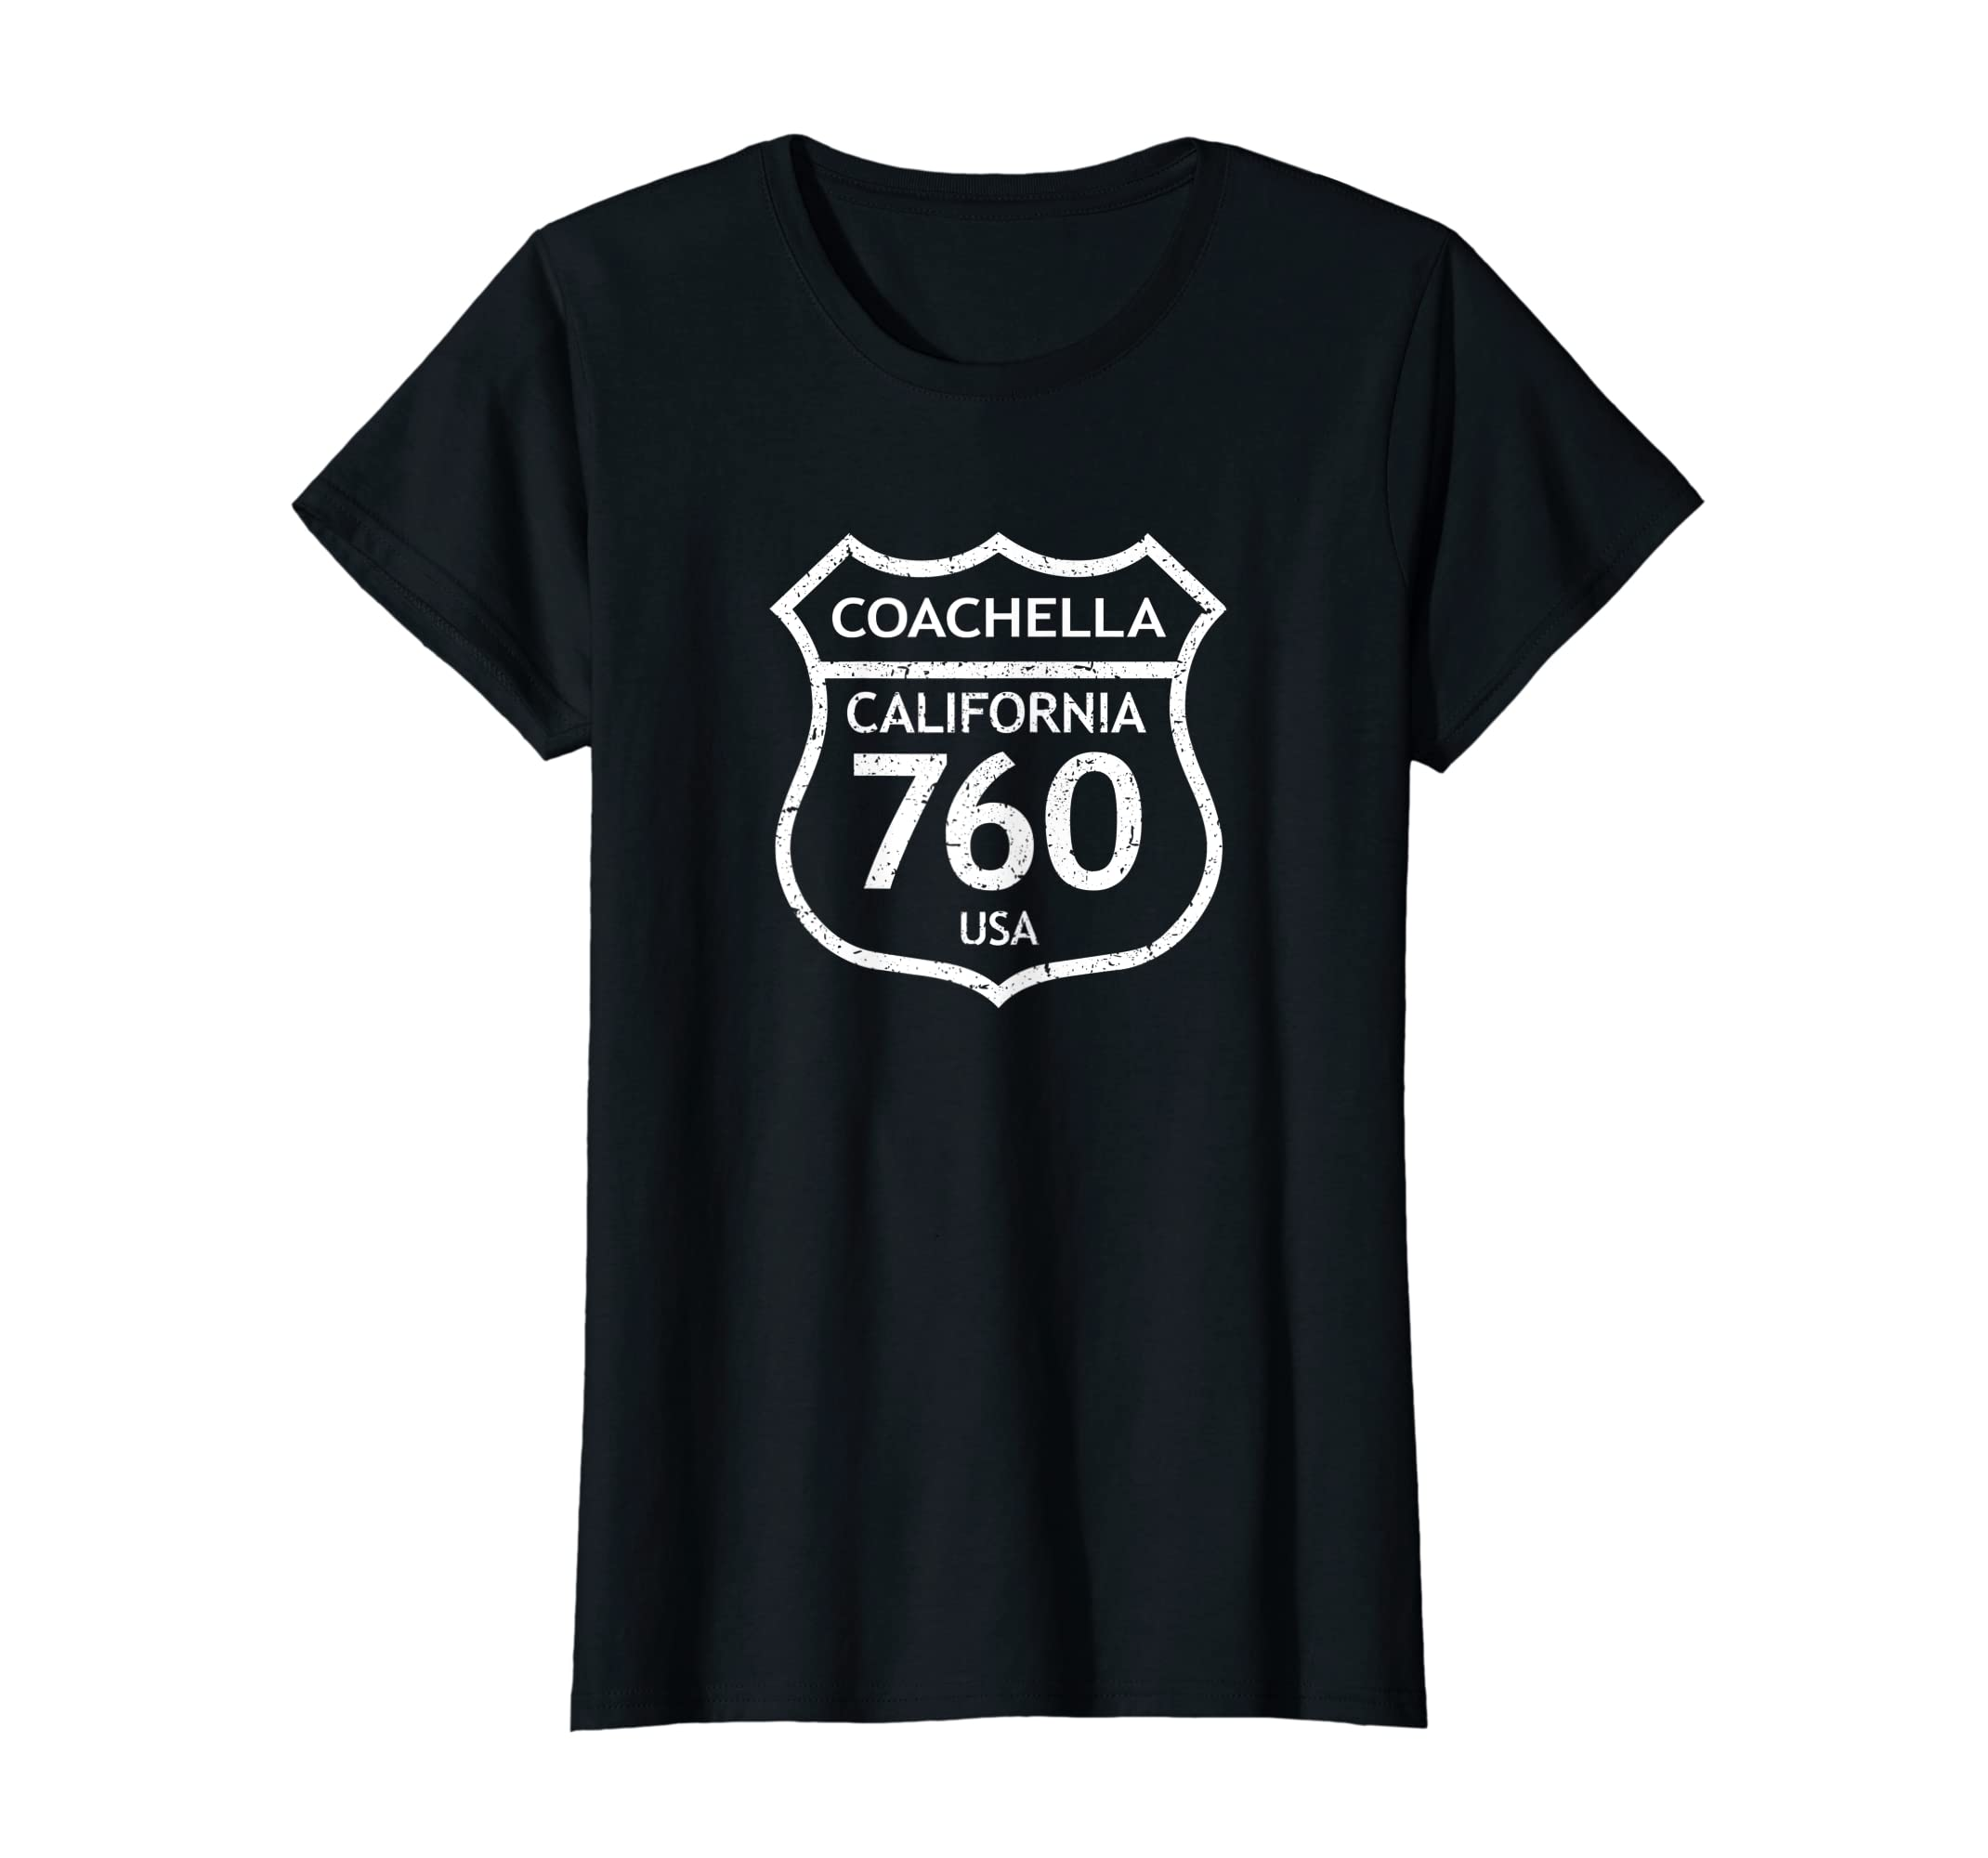 California Area Code 760 Coachella, CA Home State T Shirt: Gateway